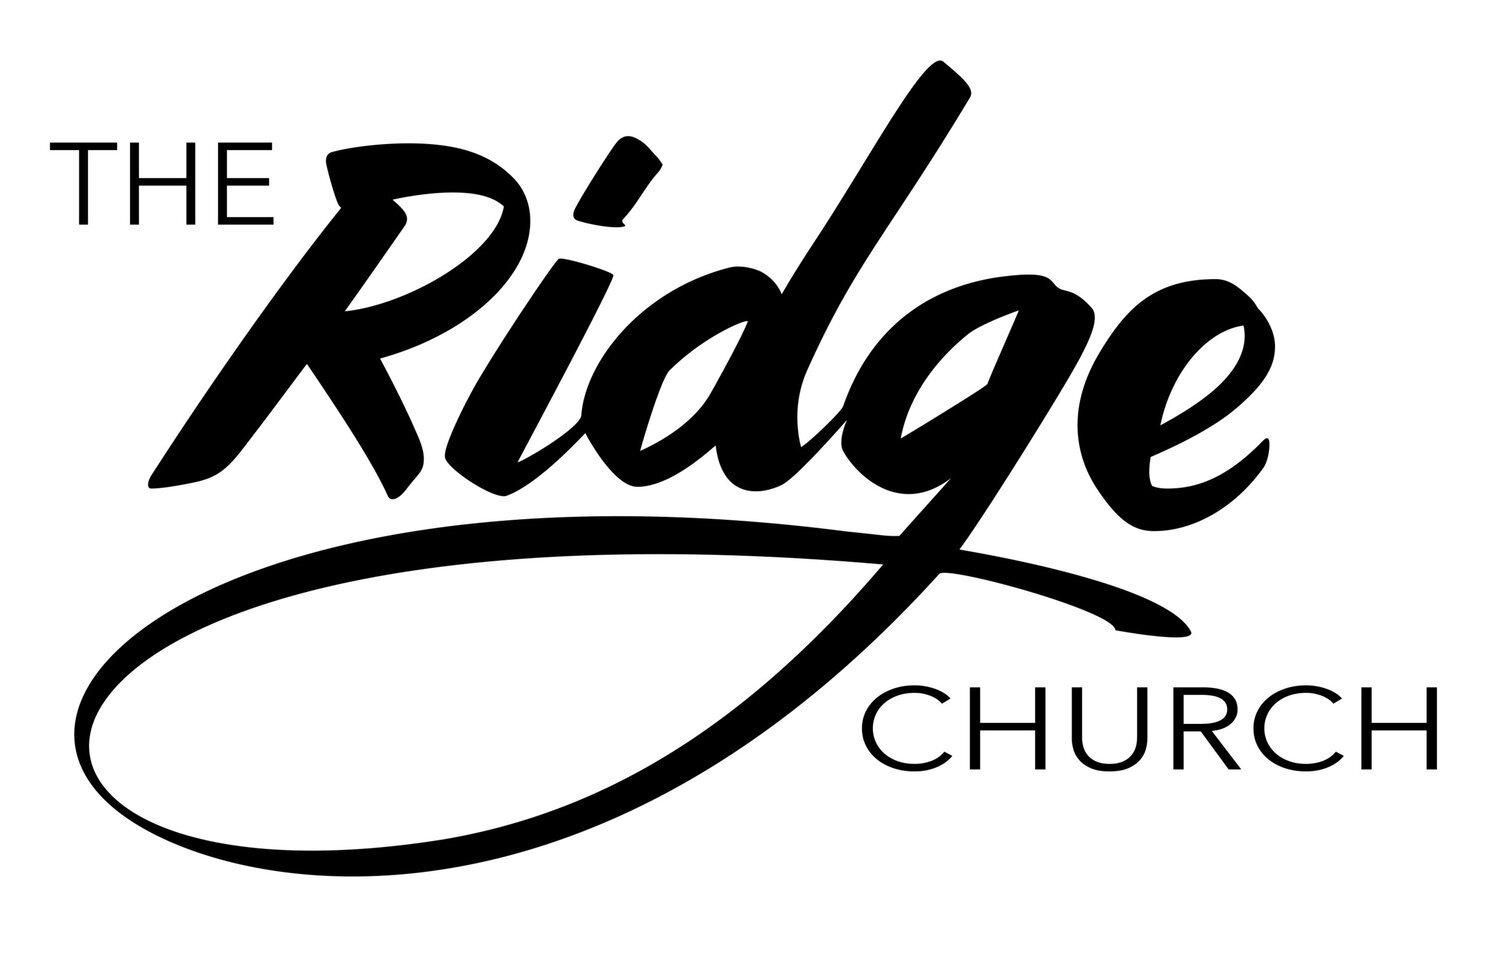 The Ridge Church Derry, NH serving Londonderry, Windham